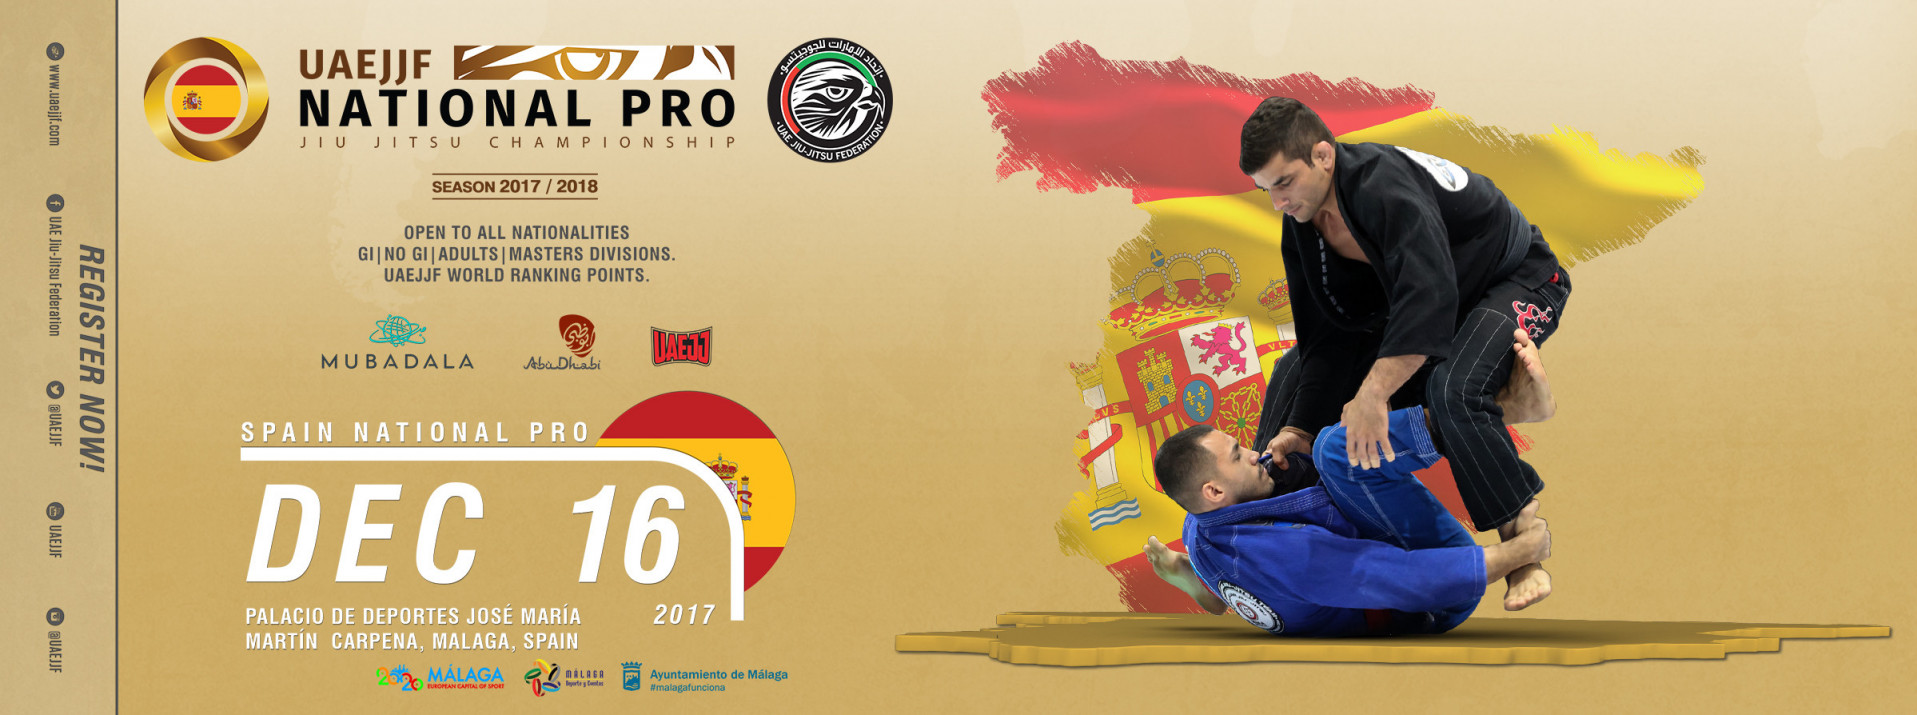 spain-national-pro-jiu-jitsu-championship-gi-no-gi-2017